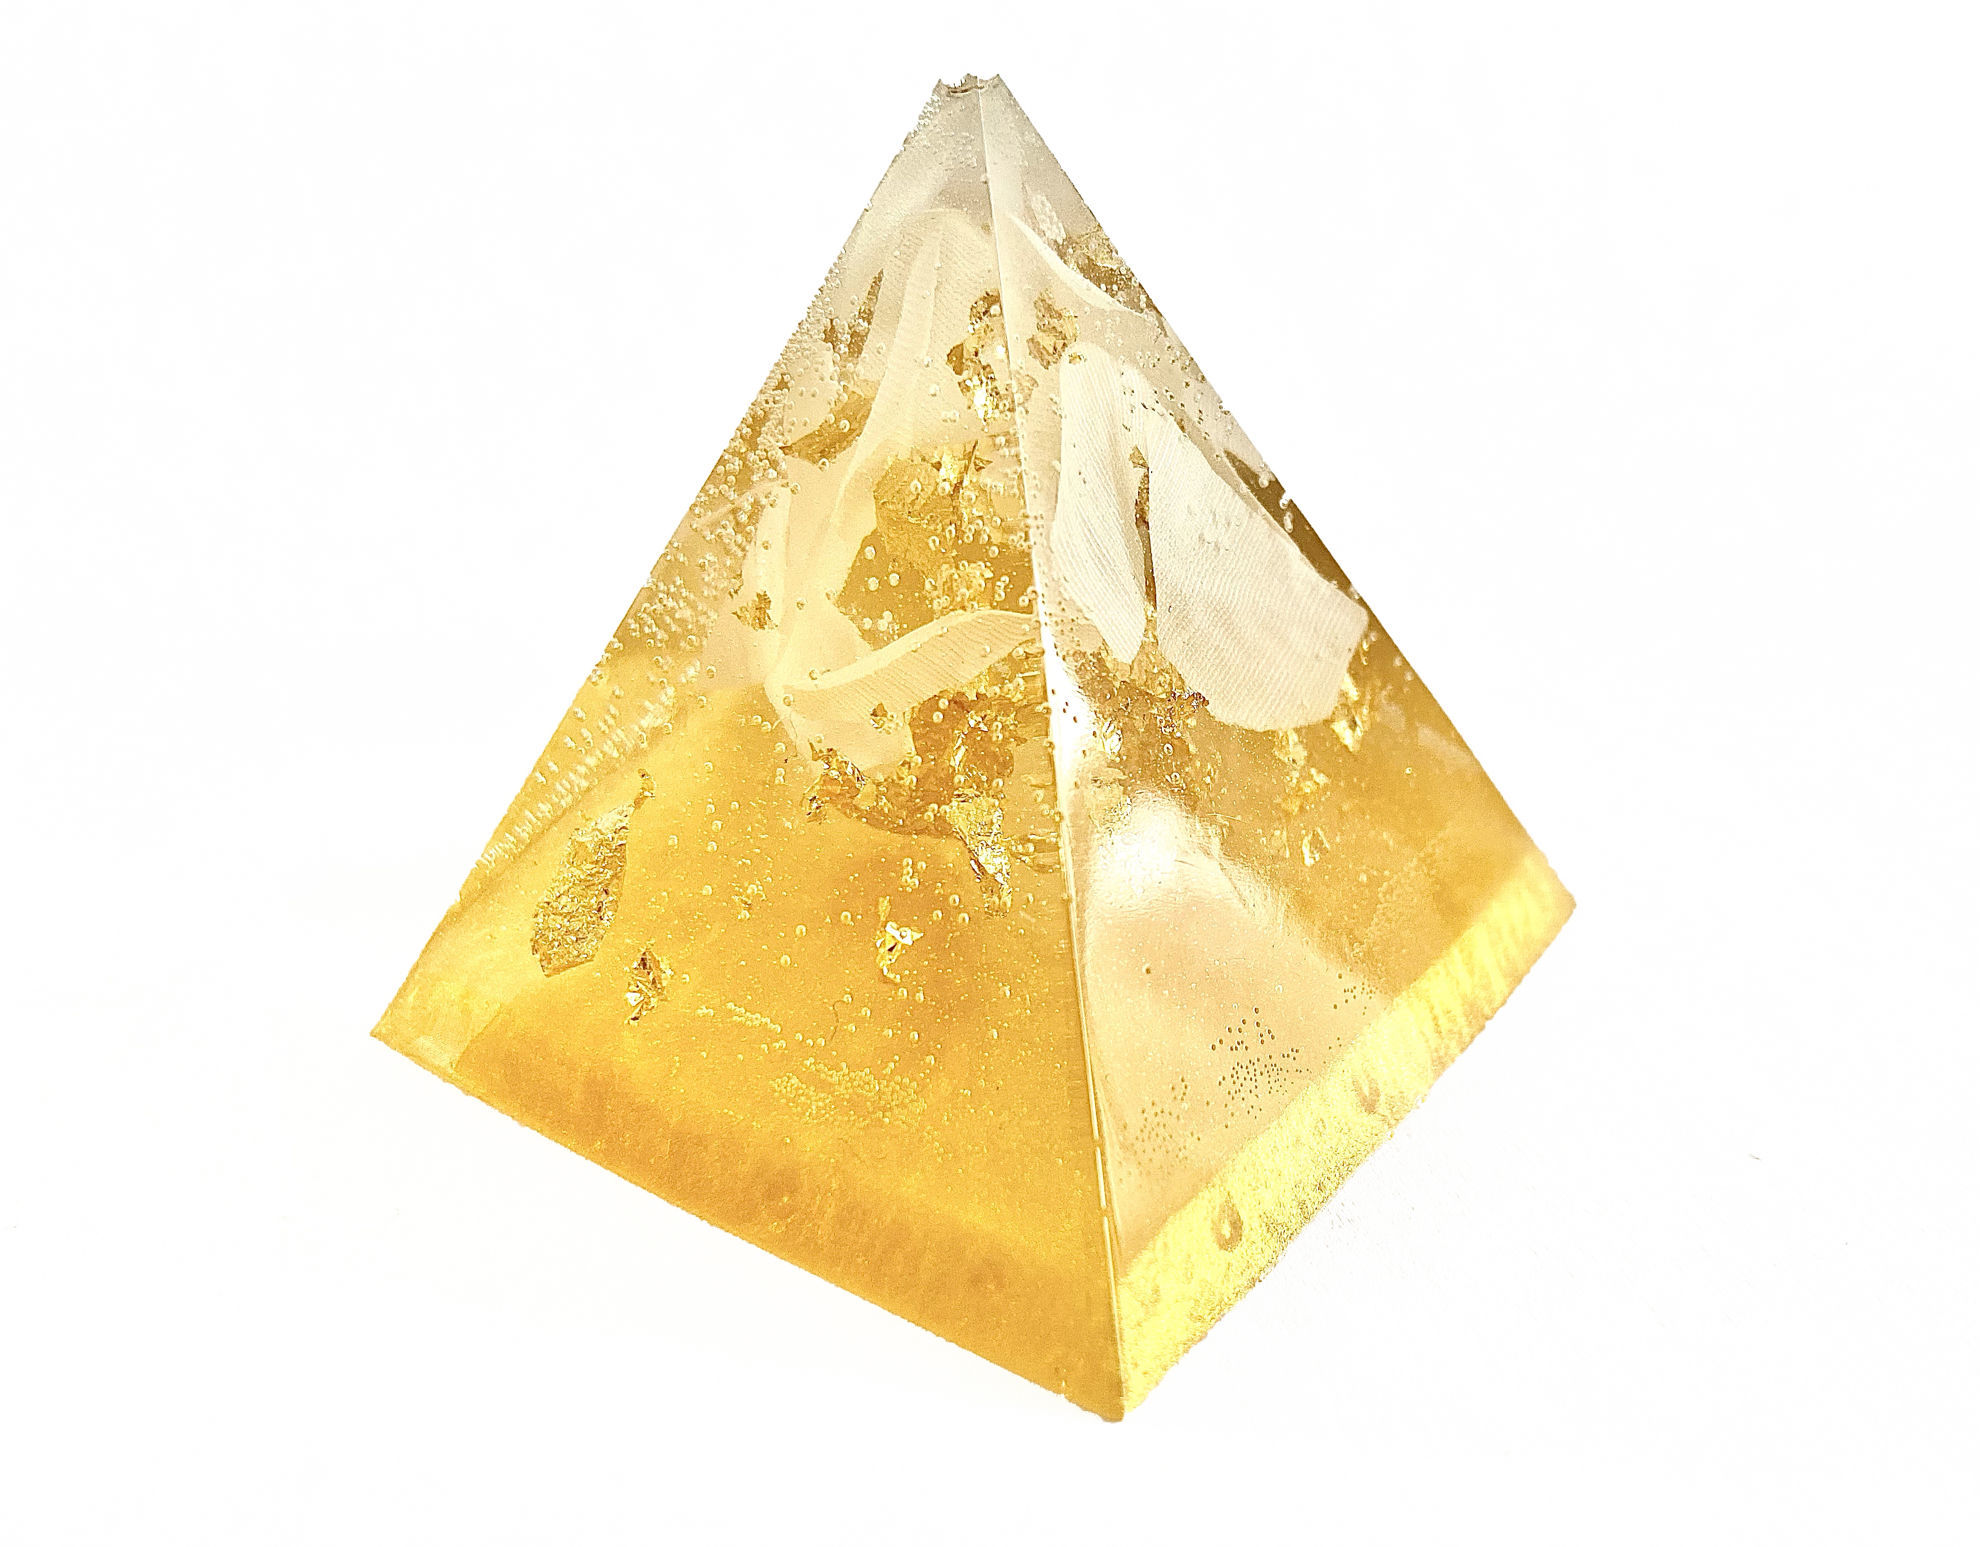 White & Gold Extra Small Pyramid by Spirited Pyramids